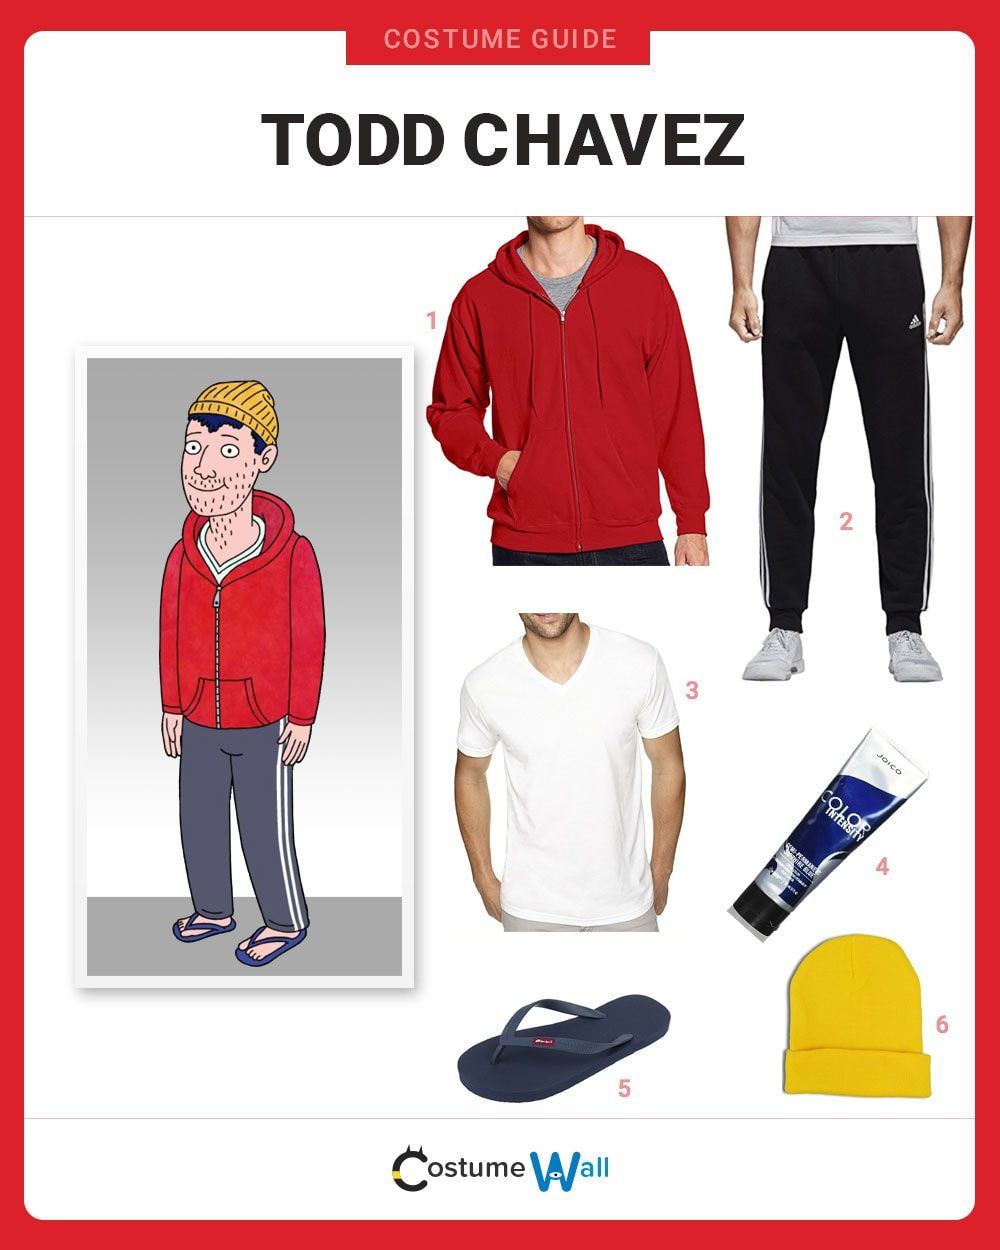 Todd Chavez Costume Guide